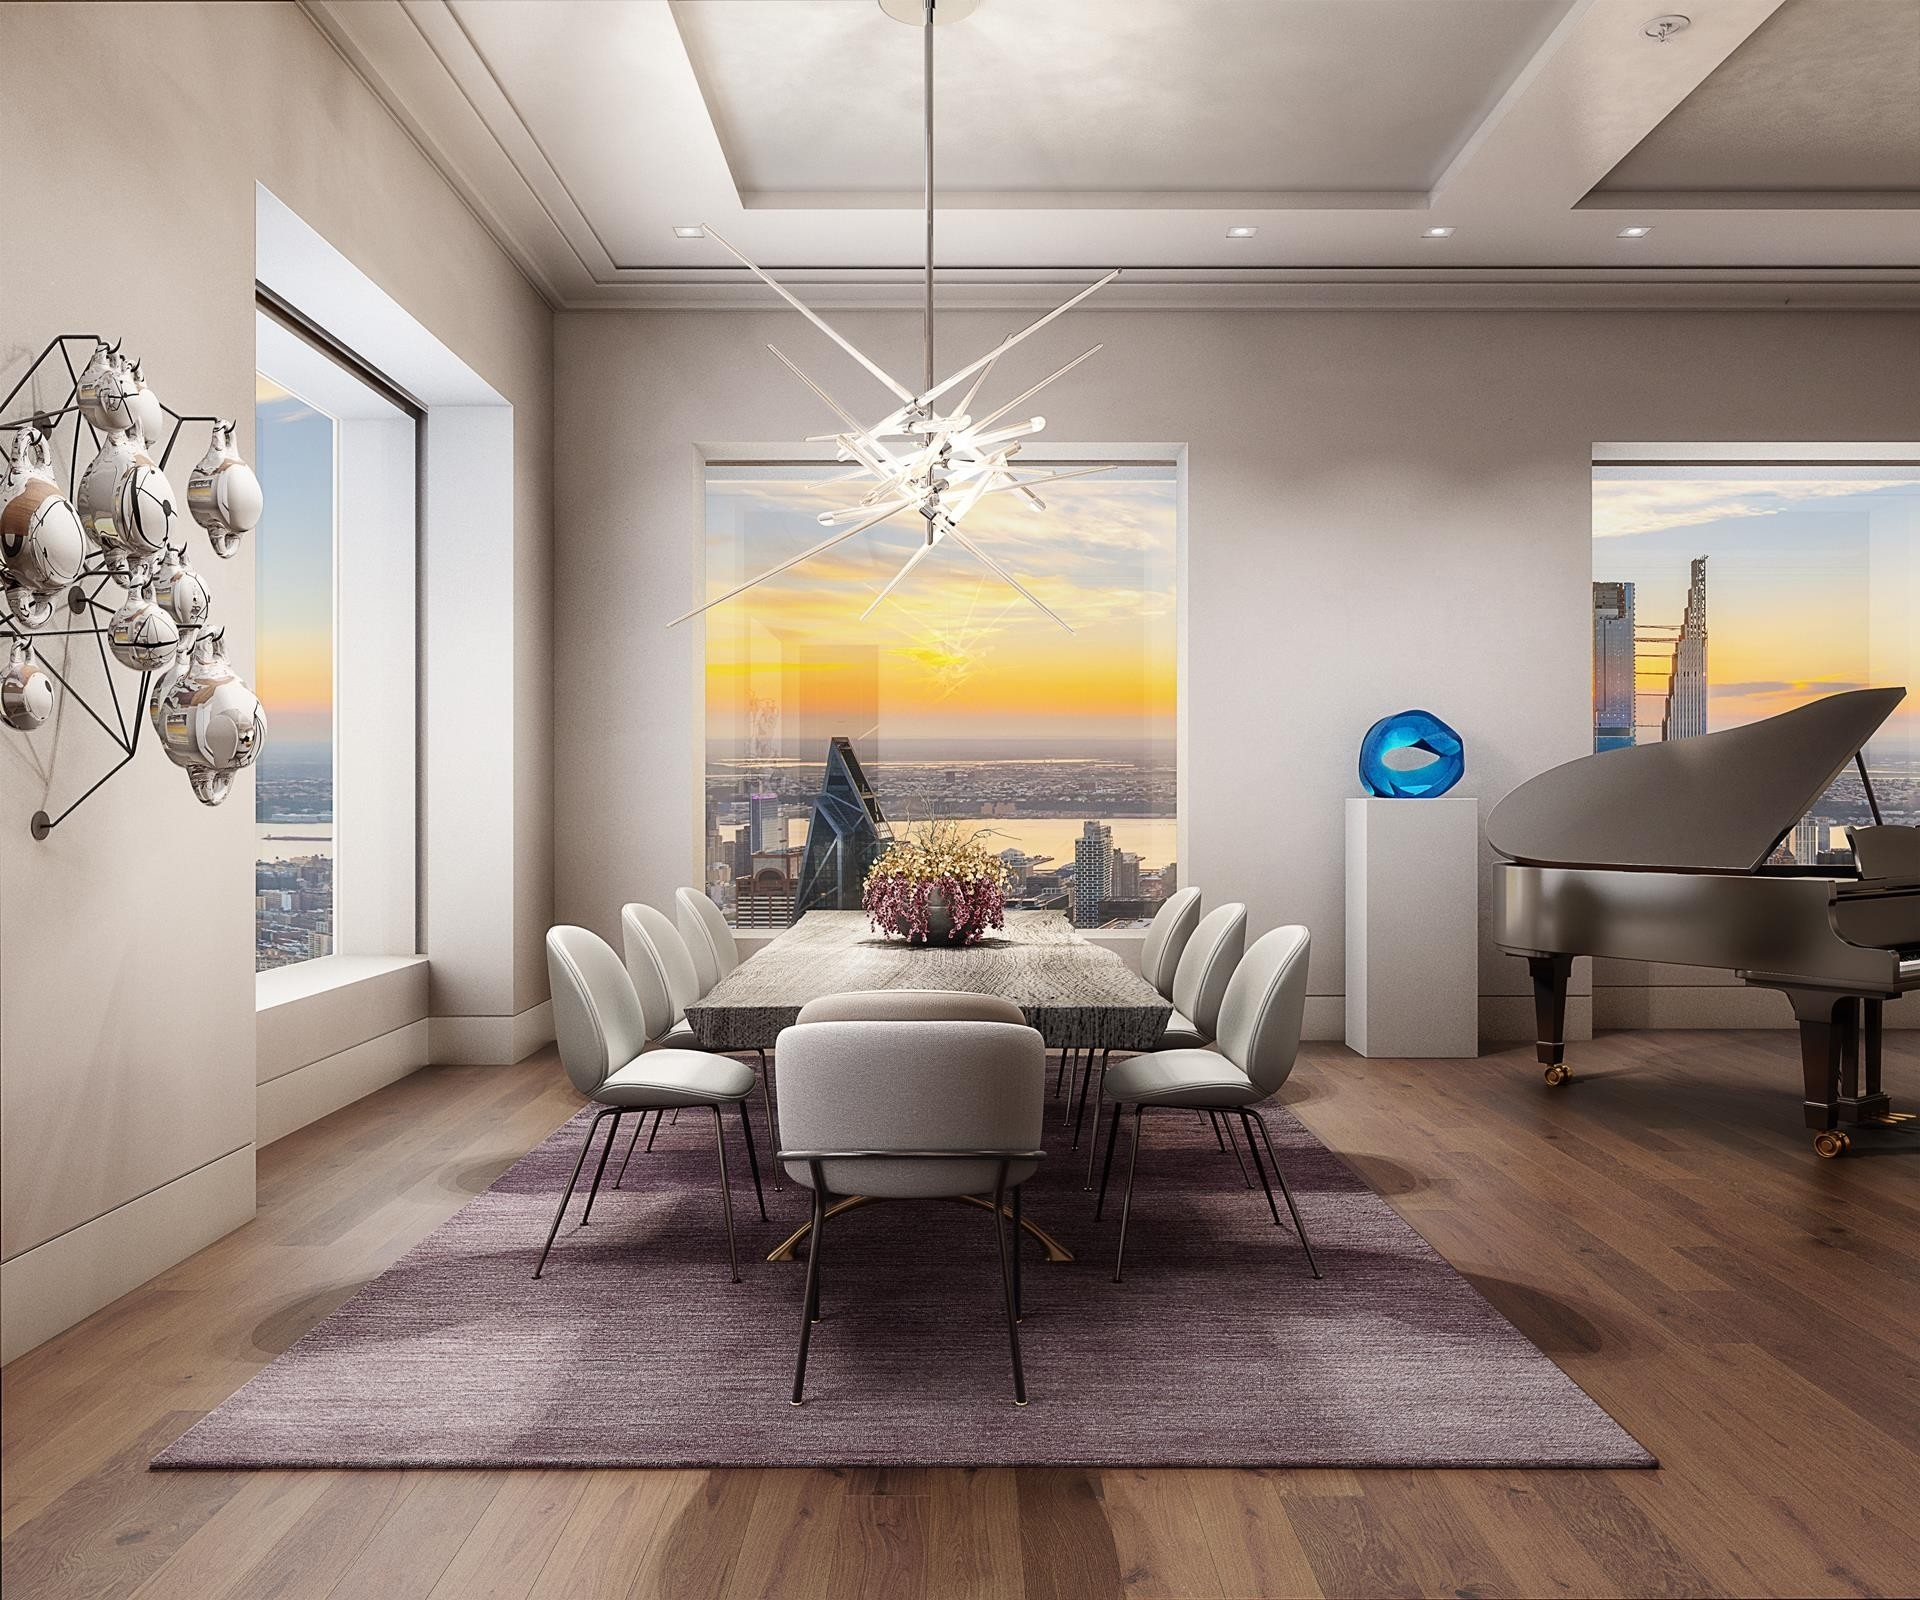 3. Condominiums for Sale at 432 Park Avenue, 82FL Midtown East, New York, NY 10022